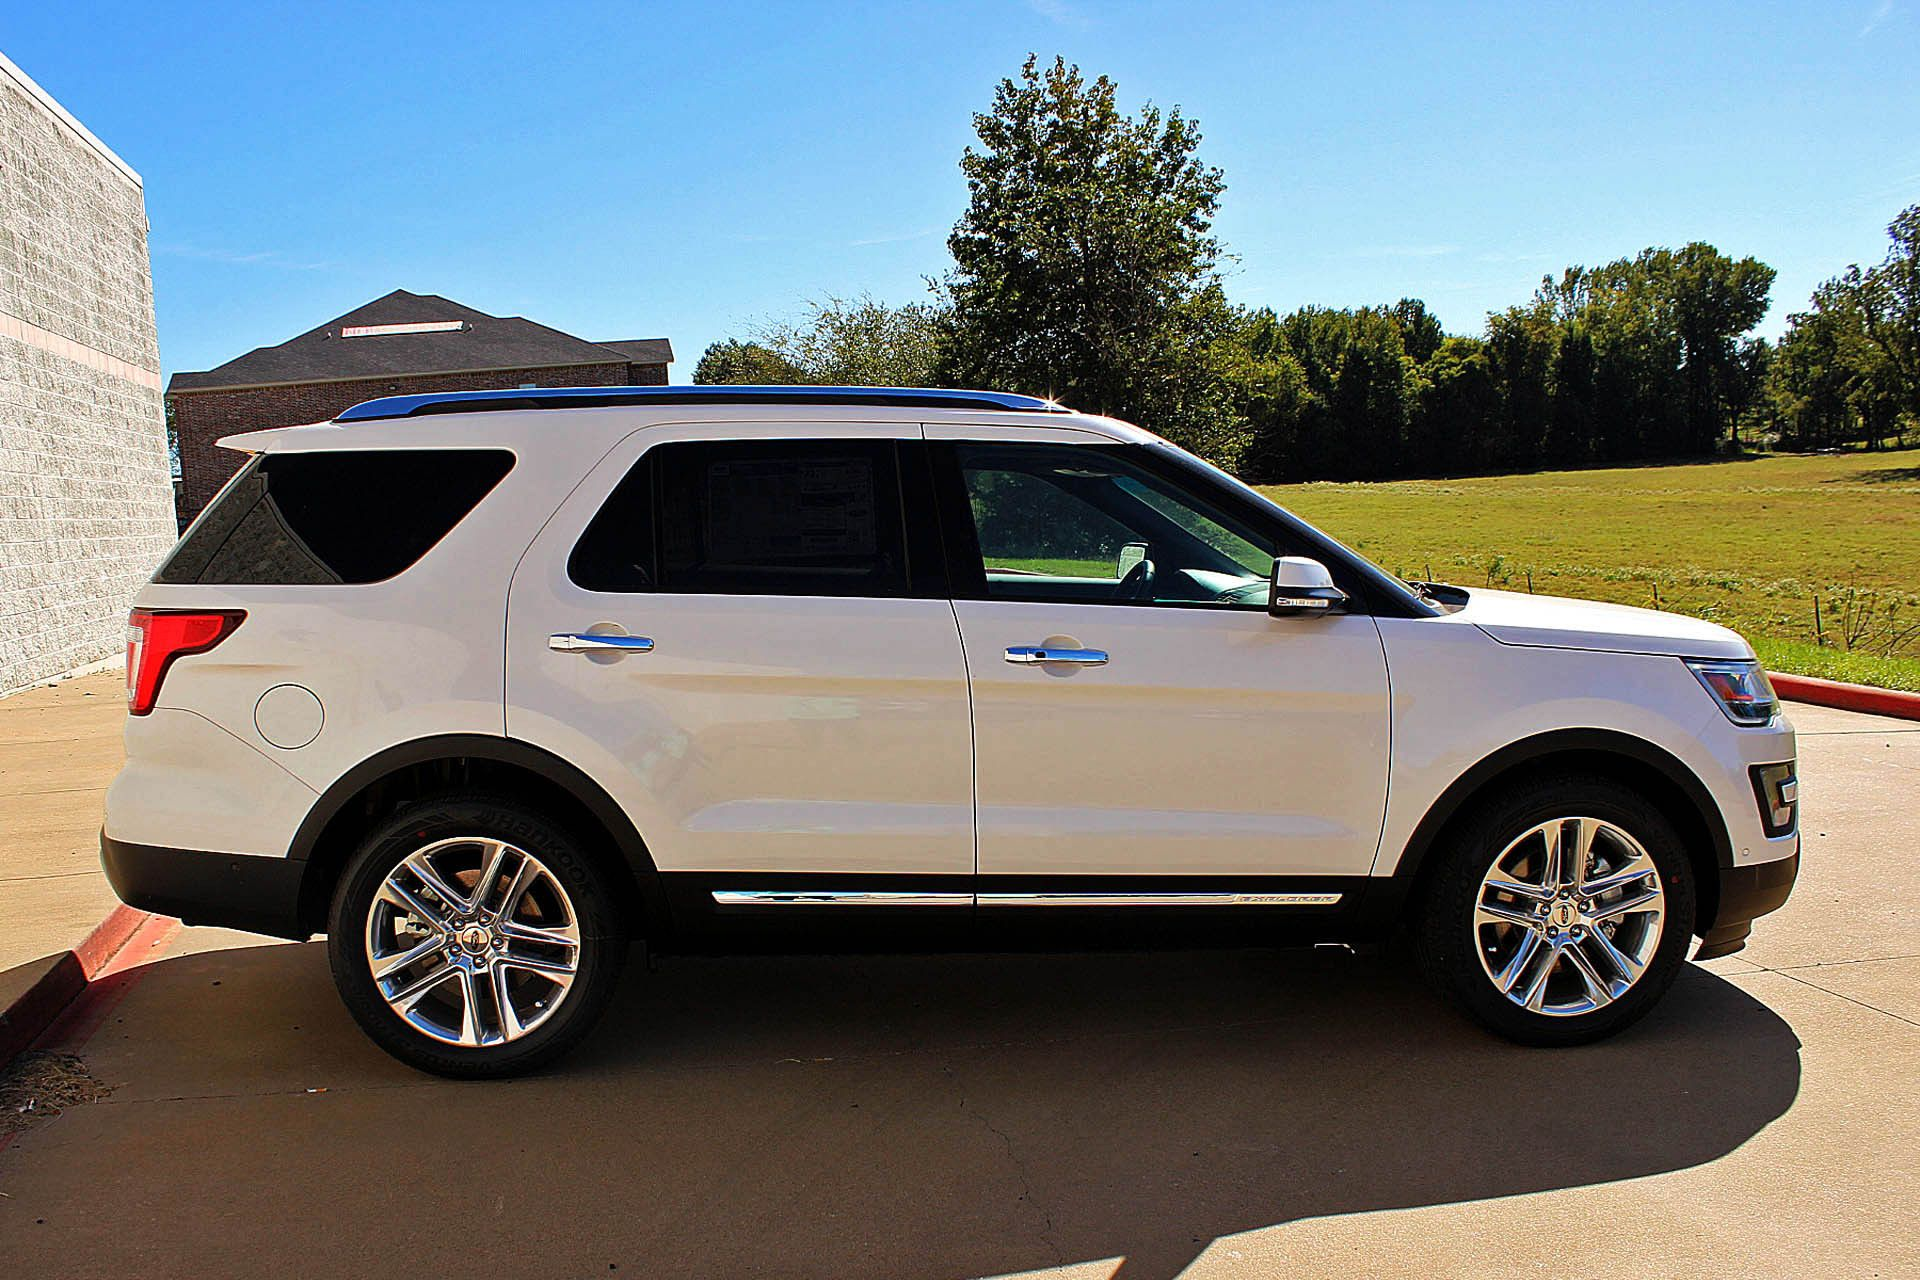 20 Best Of 2017 Ford Explorer Sport Family Cars Suv Ford